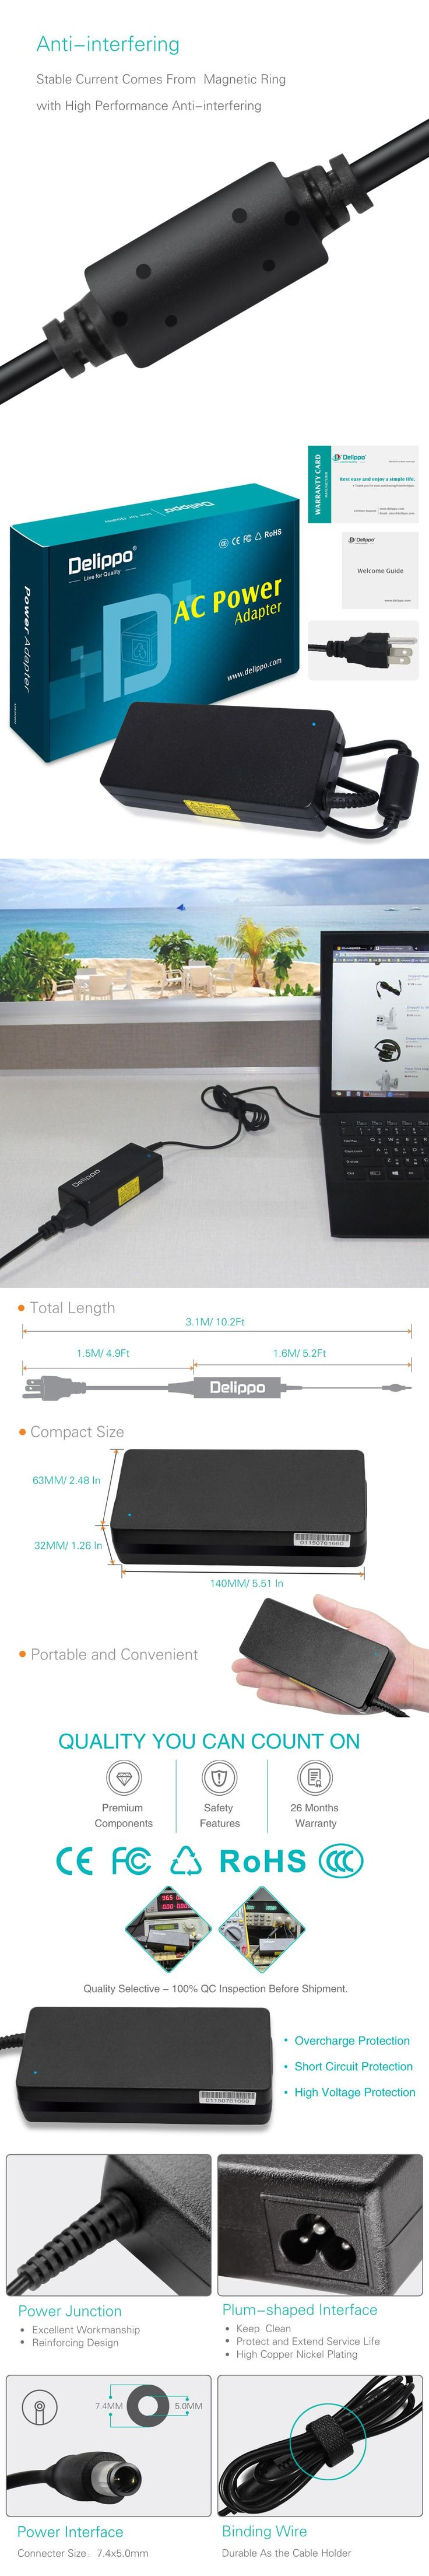 200 Best Laptop Accessories Images On Pinterest Charger Adaptor Acer Aspire 1148 Delippo 195v 67a 130w Ac Adapter For Dell Xps 14 L401x 15